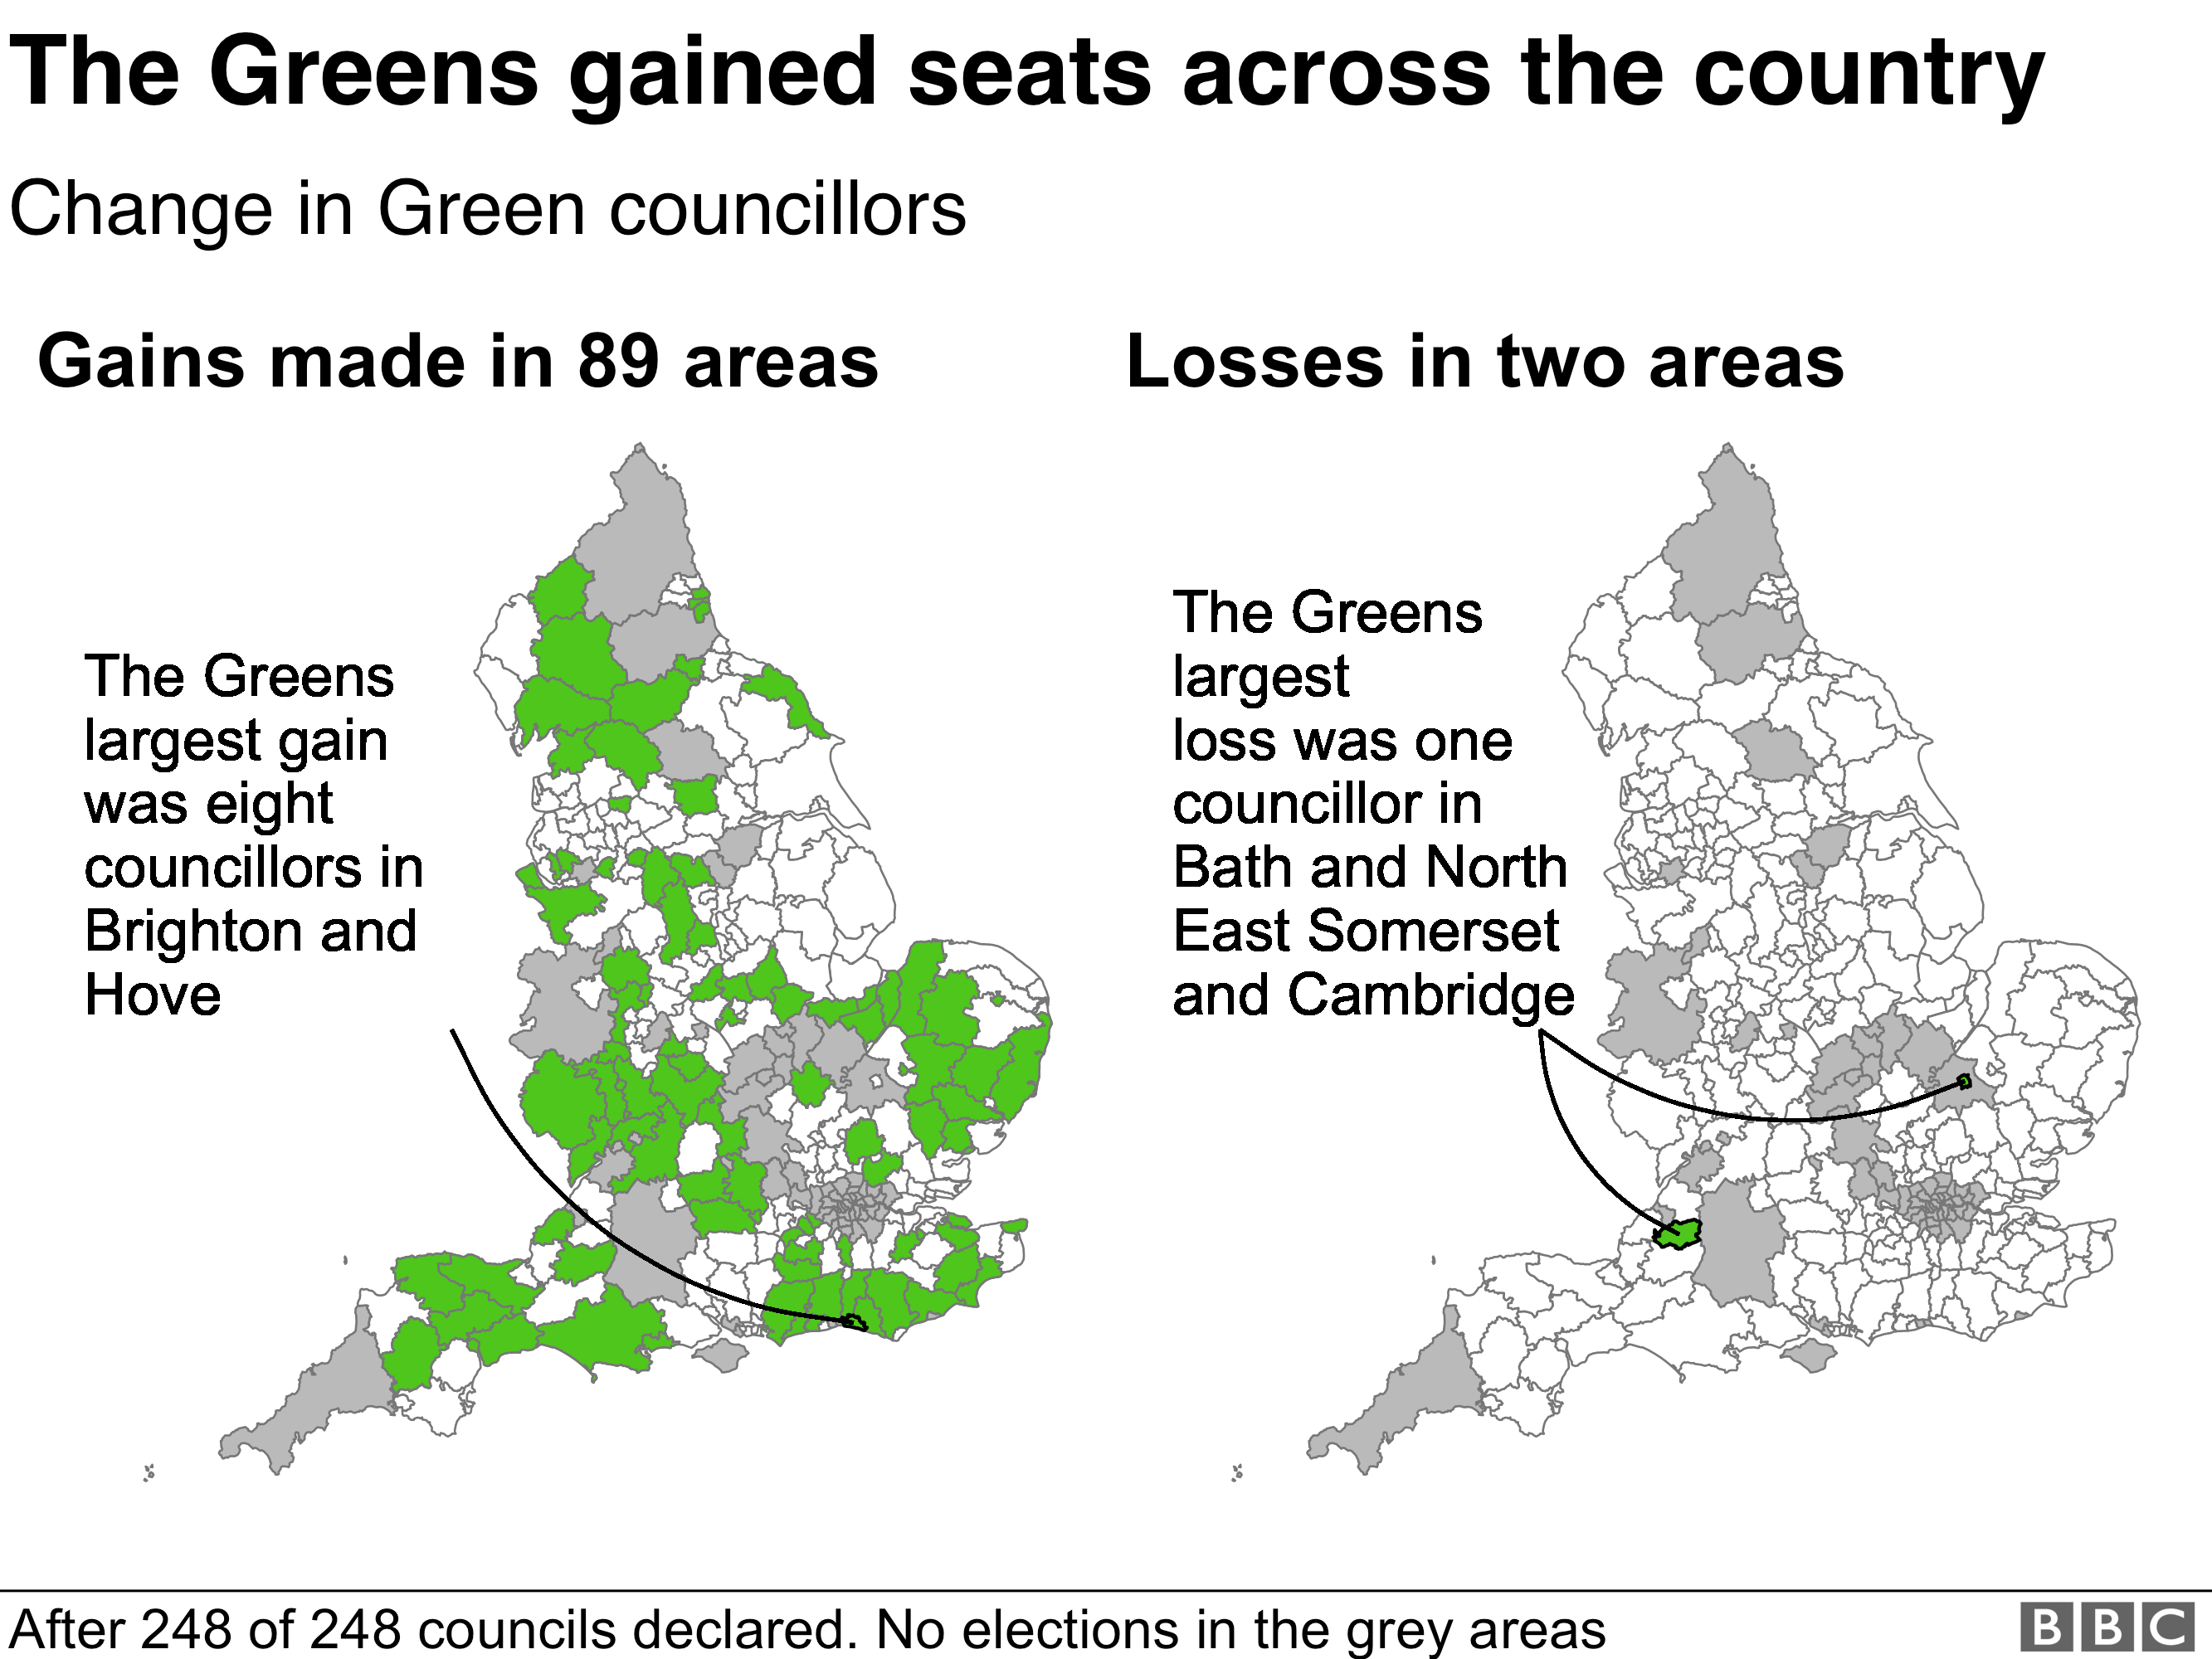 The Greens made gains across the country